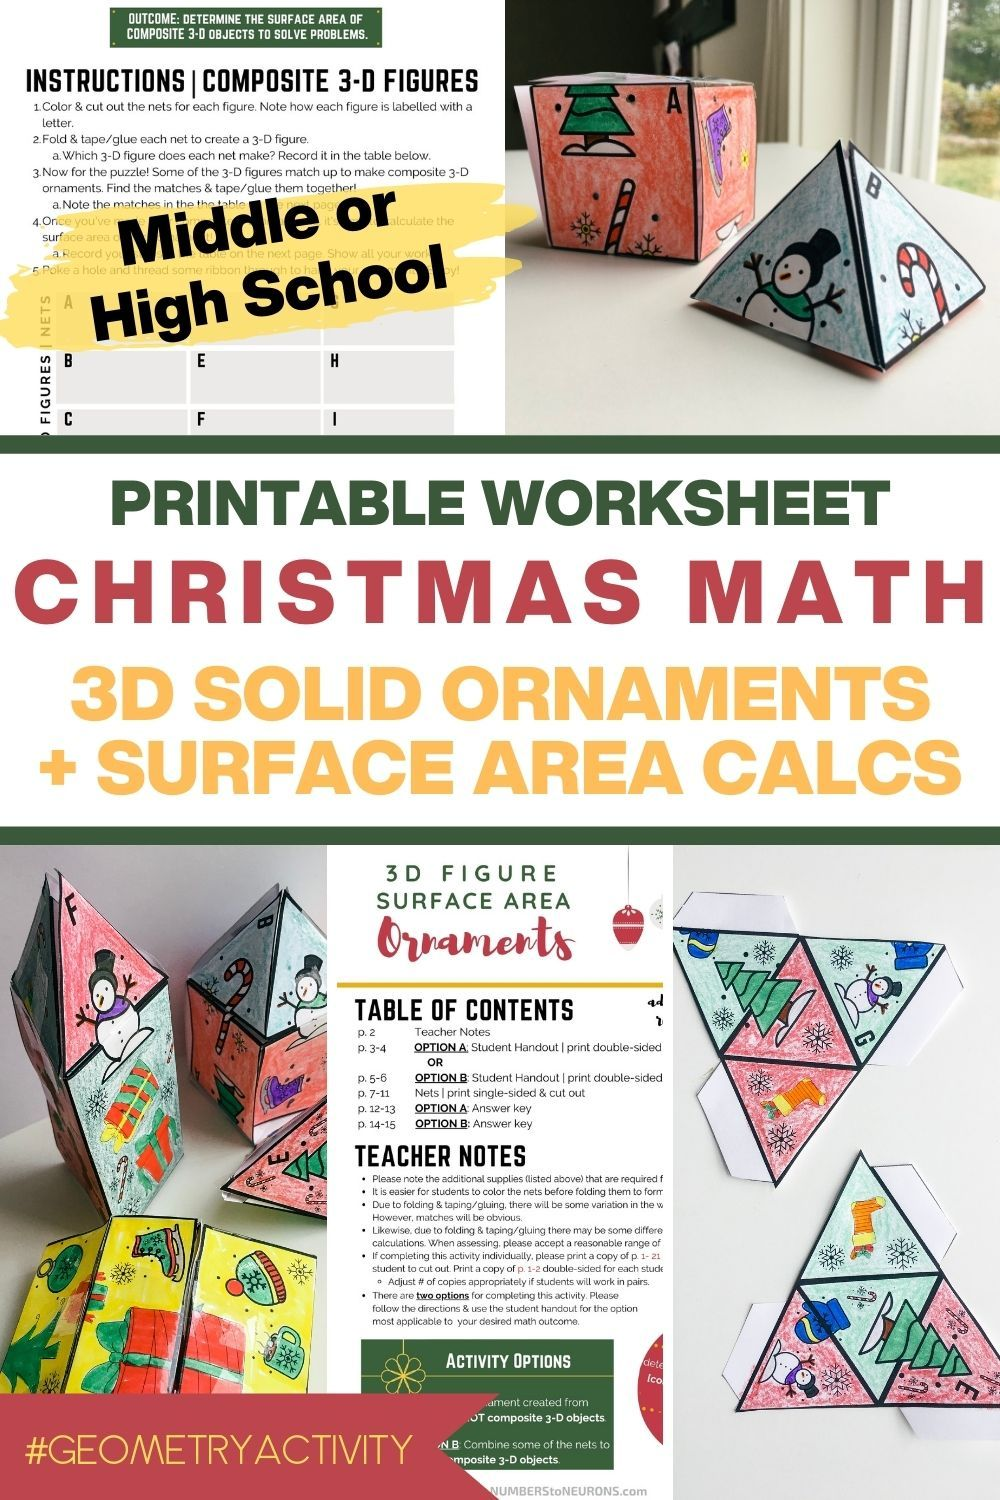 Printable Christmas Math Activity   3D Geometry for Middle or High School   Christmas  math [ 1500 x 1000 Pixel ]